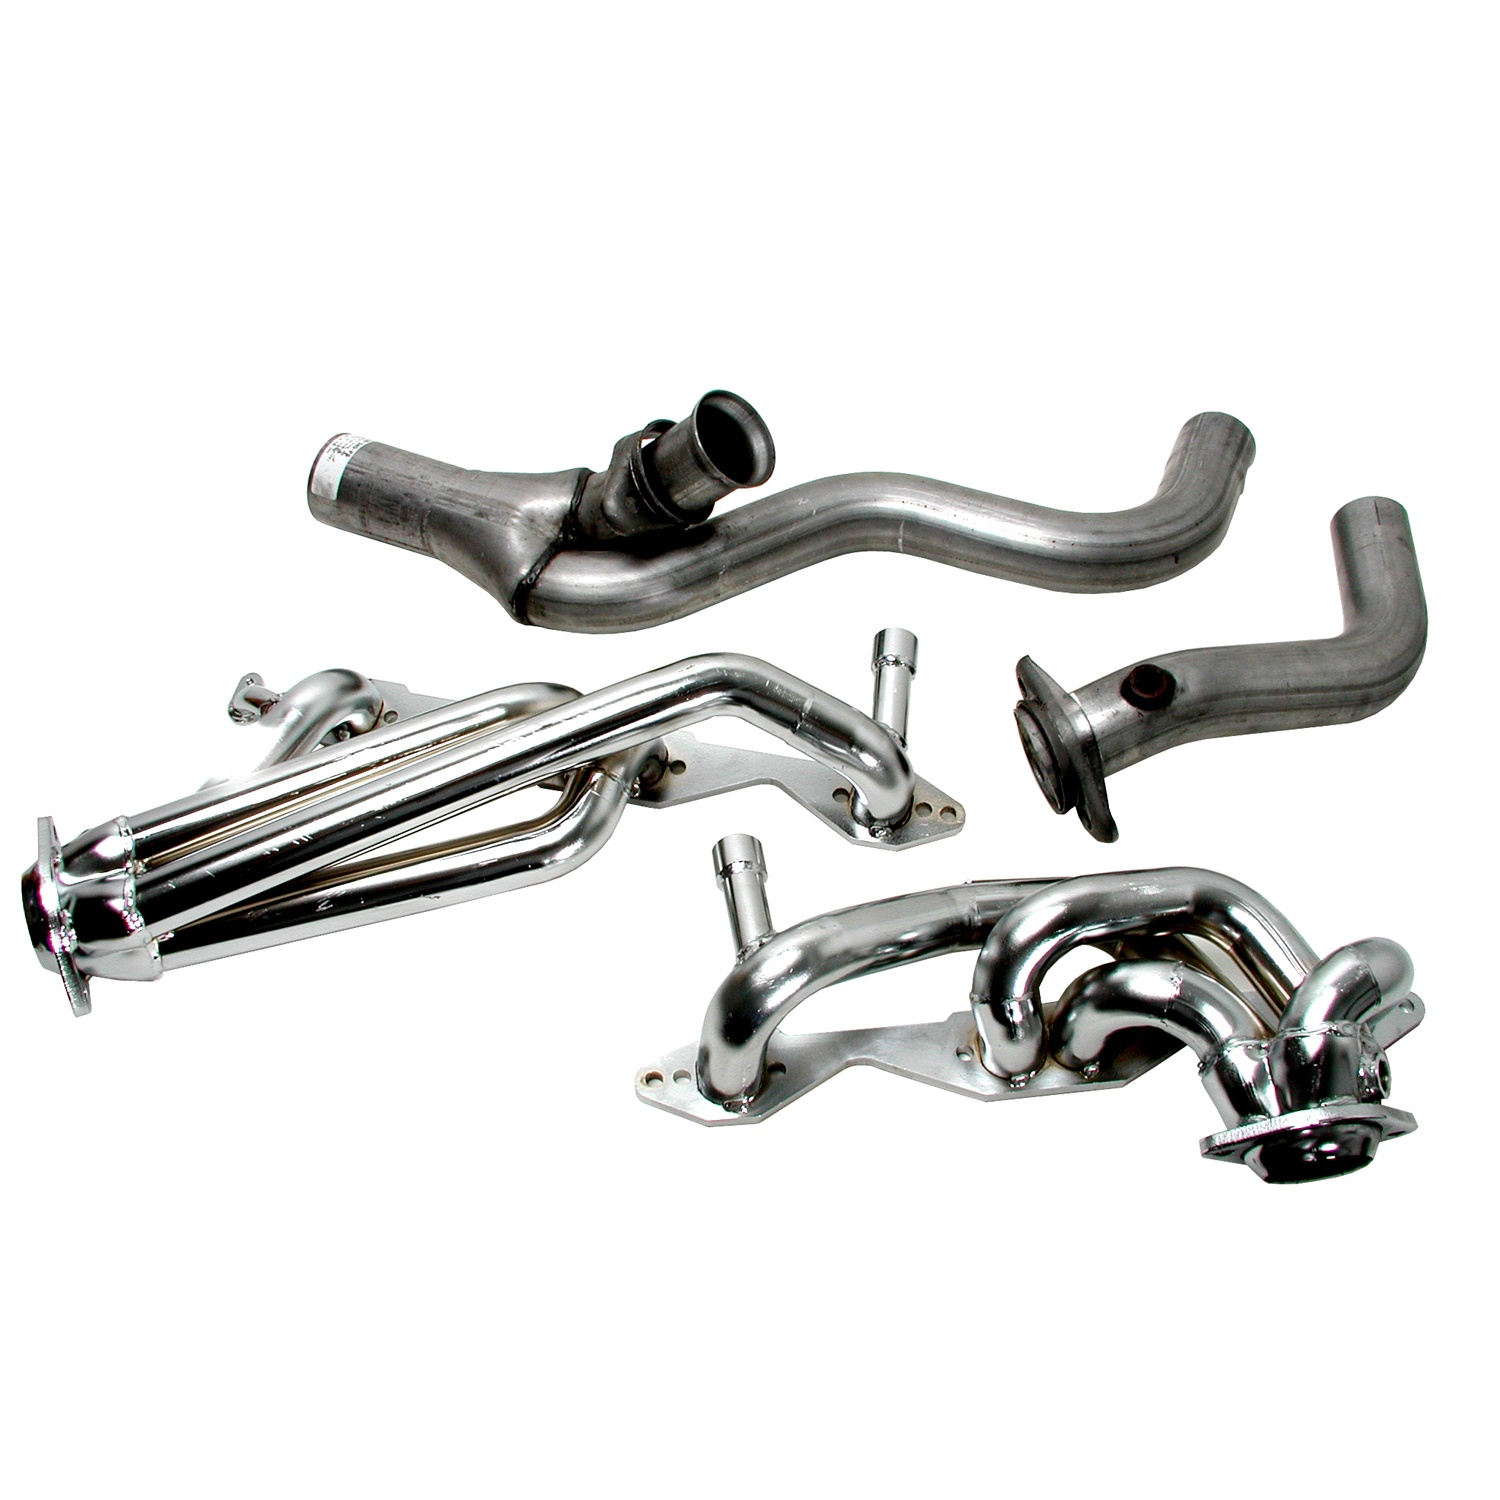 Bbk Cnc Series Performance Header Chrome